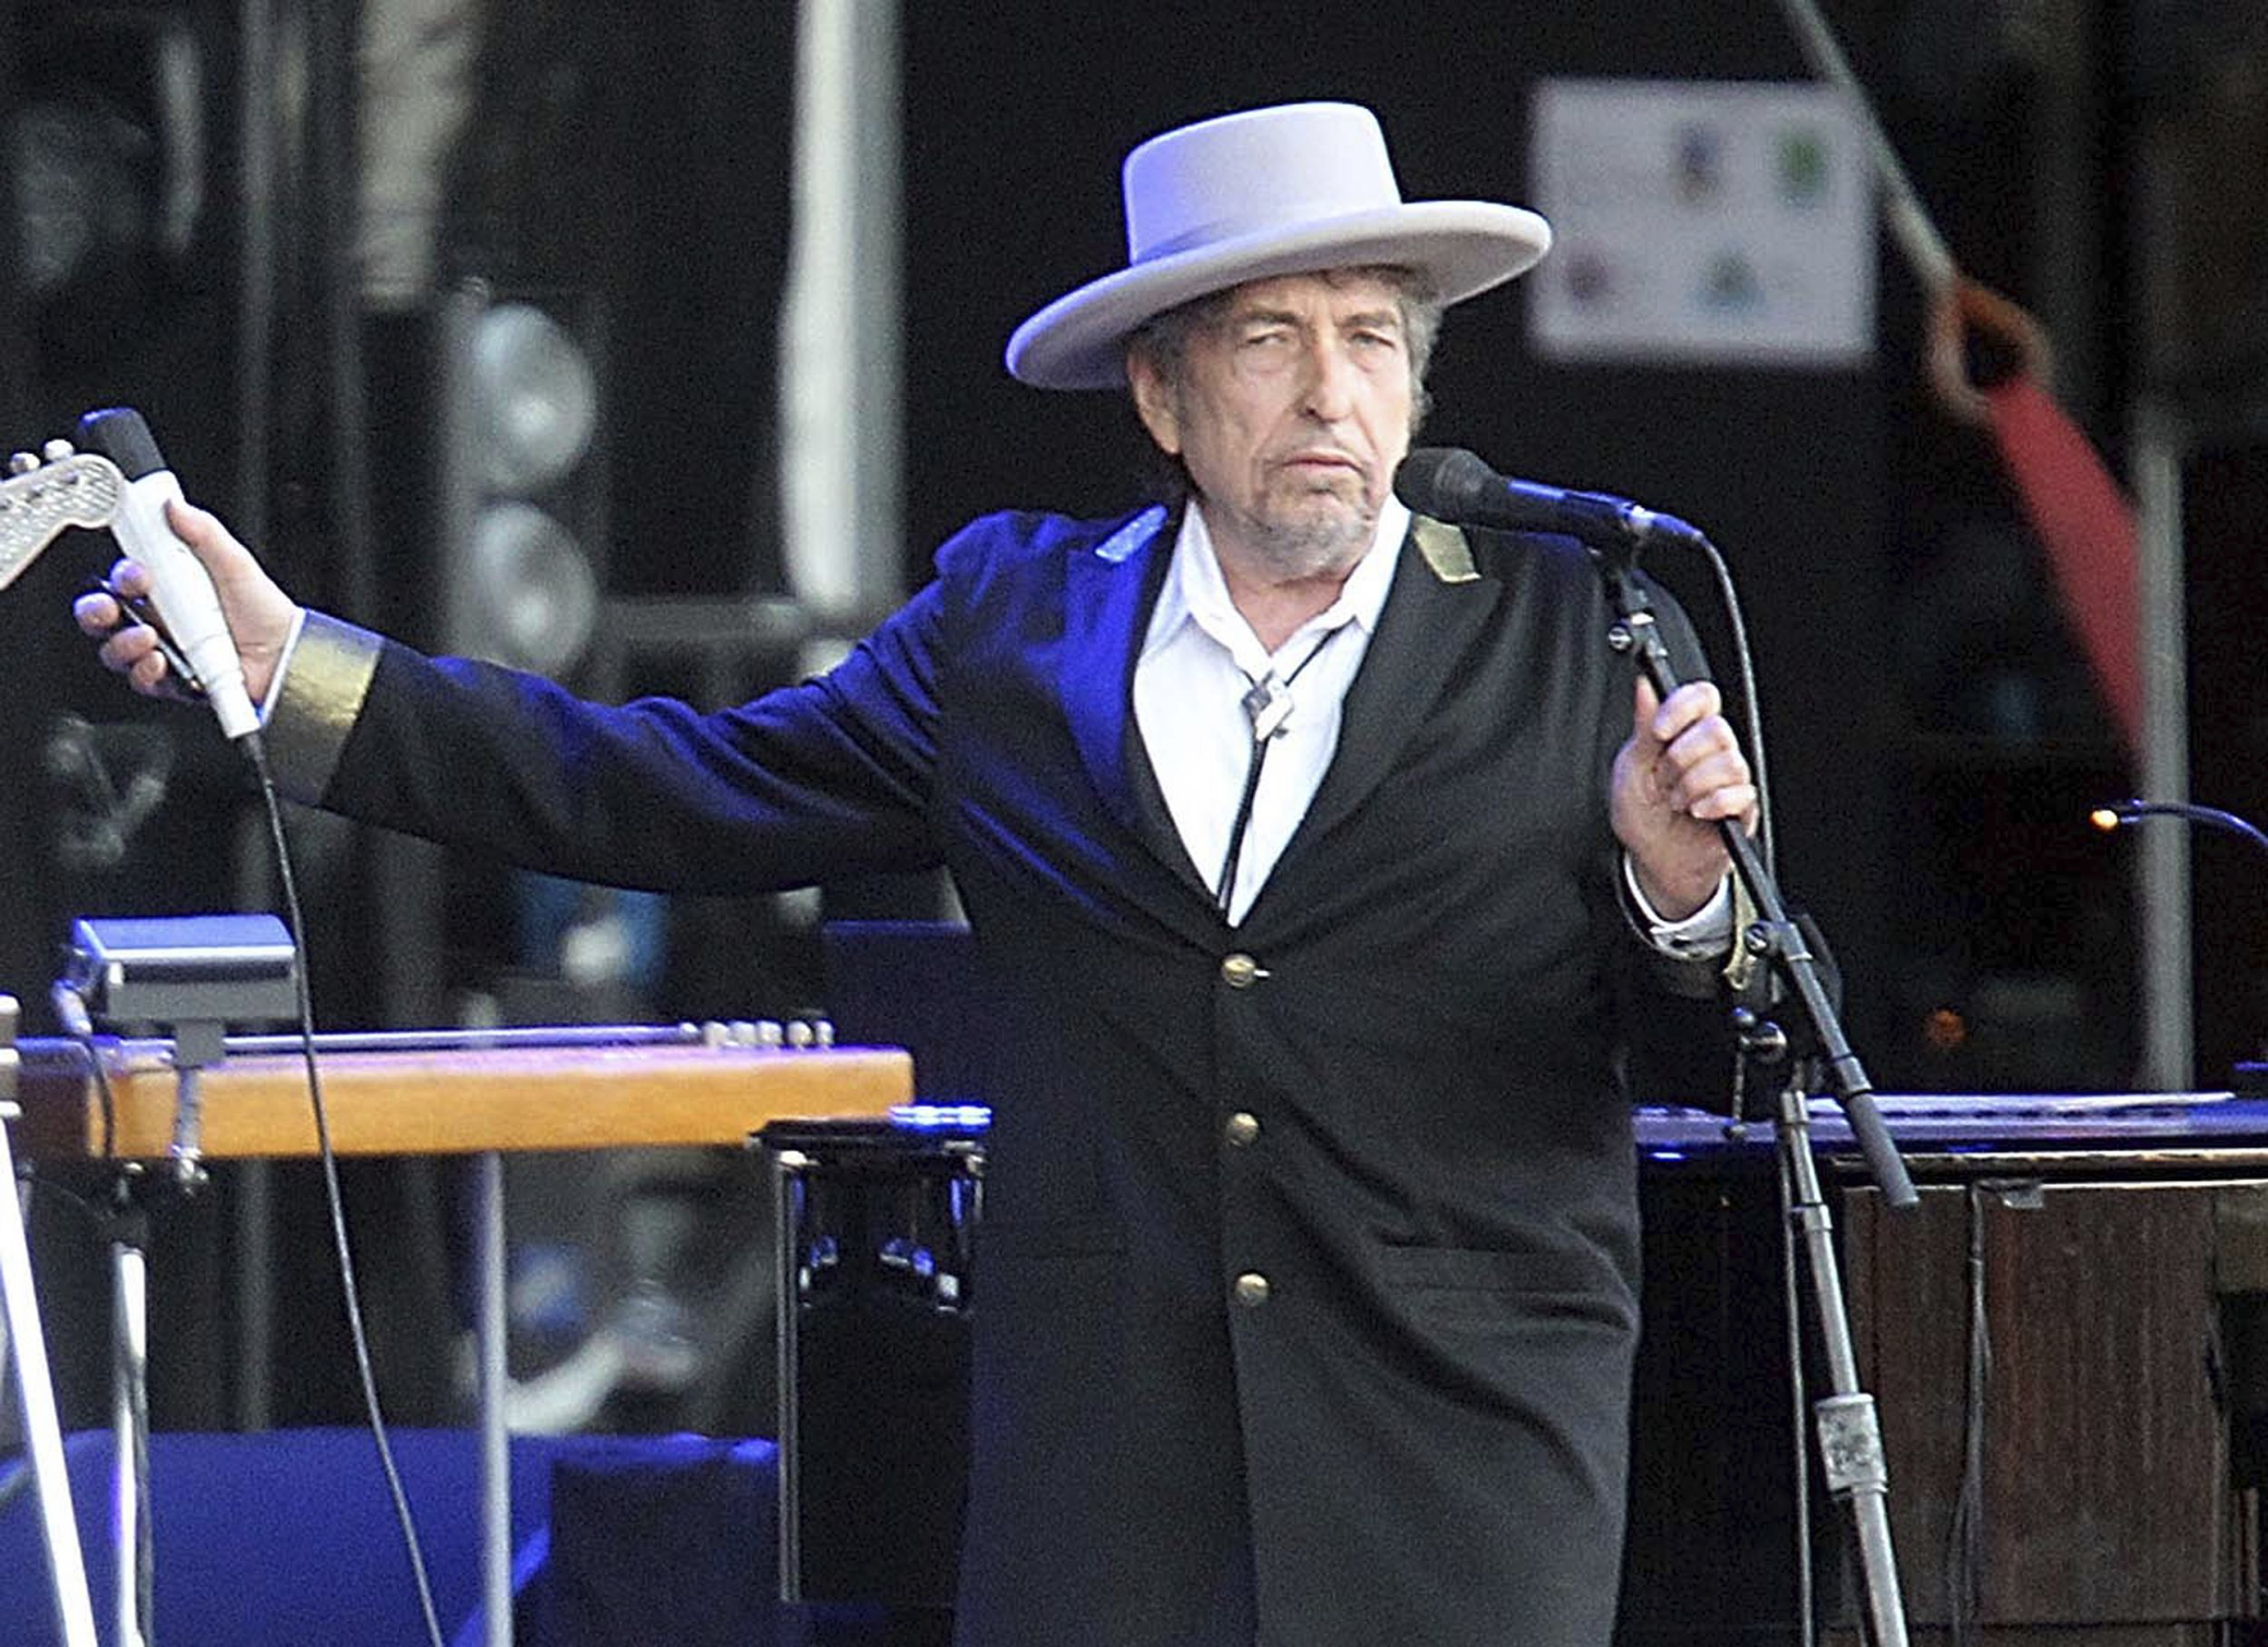 Bob Dylan finally collects his Nobel Prize three months after the ceremony